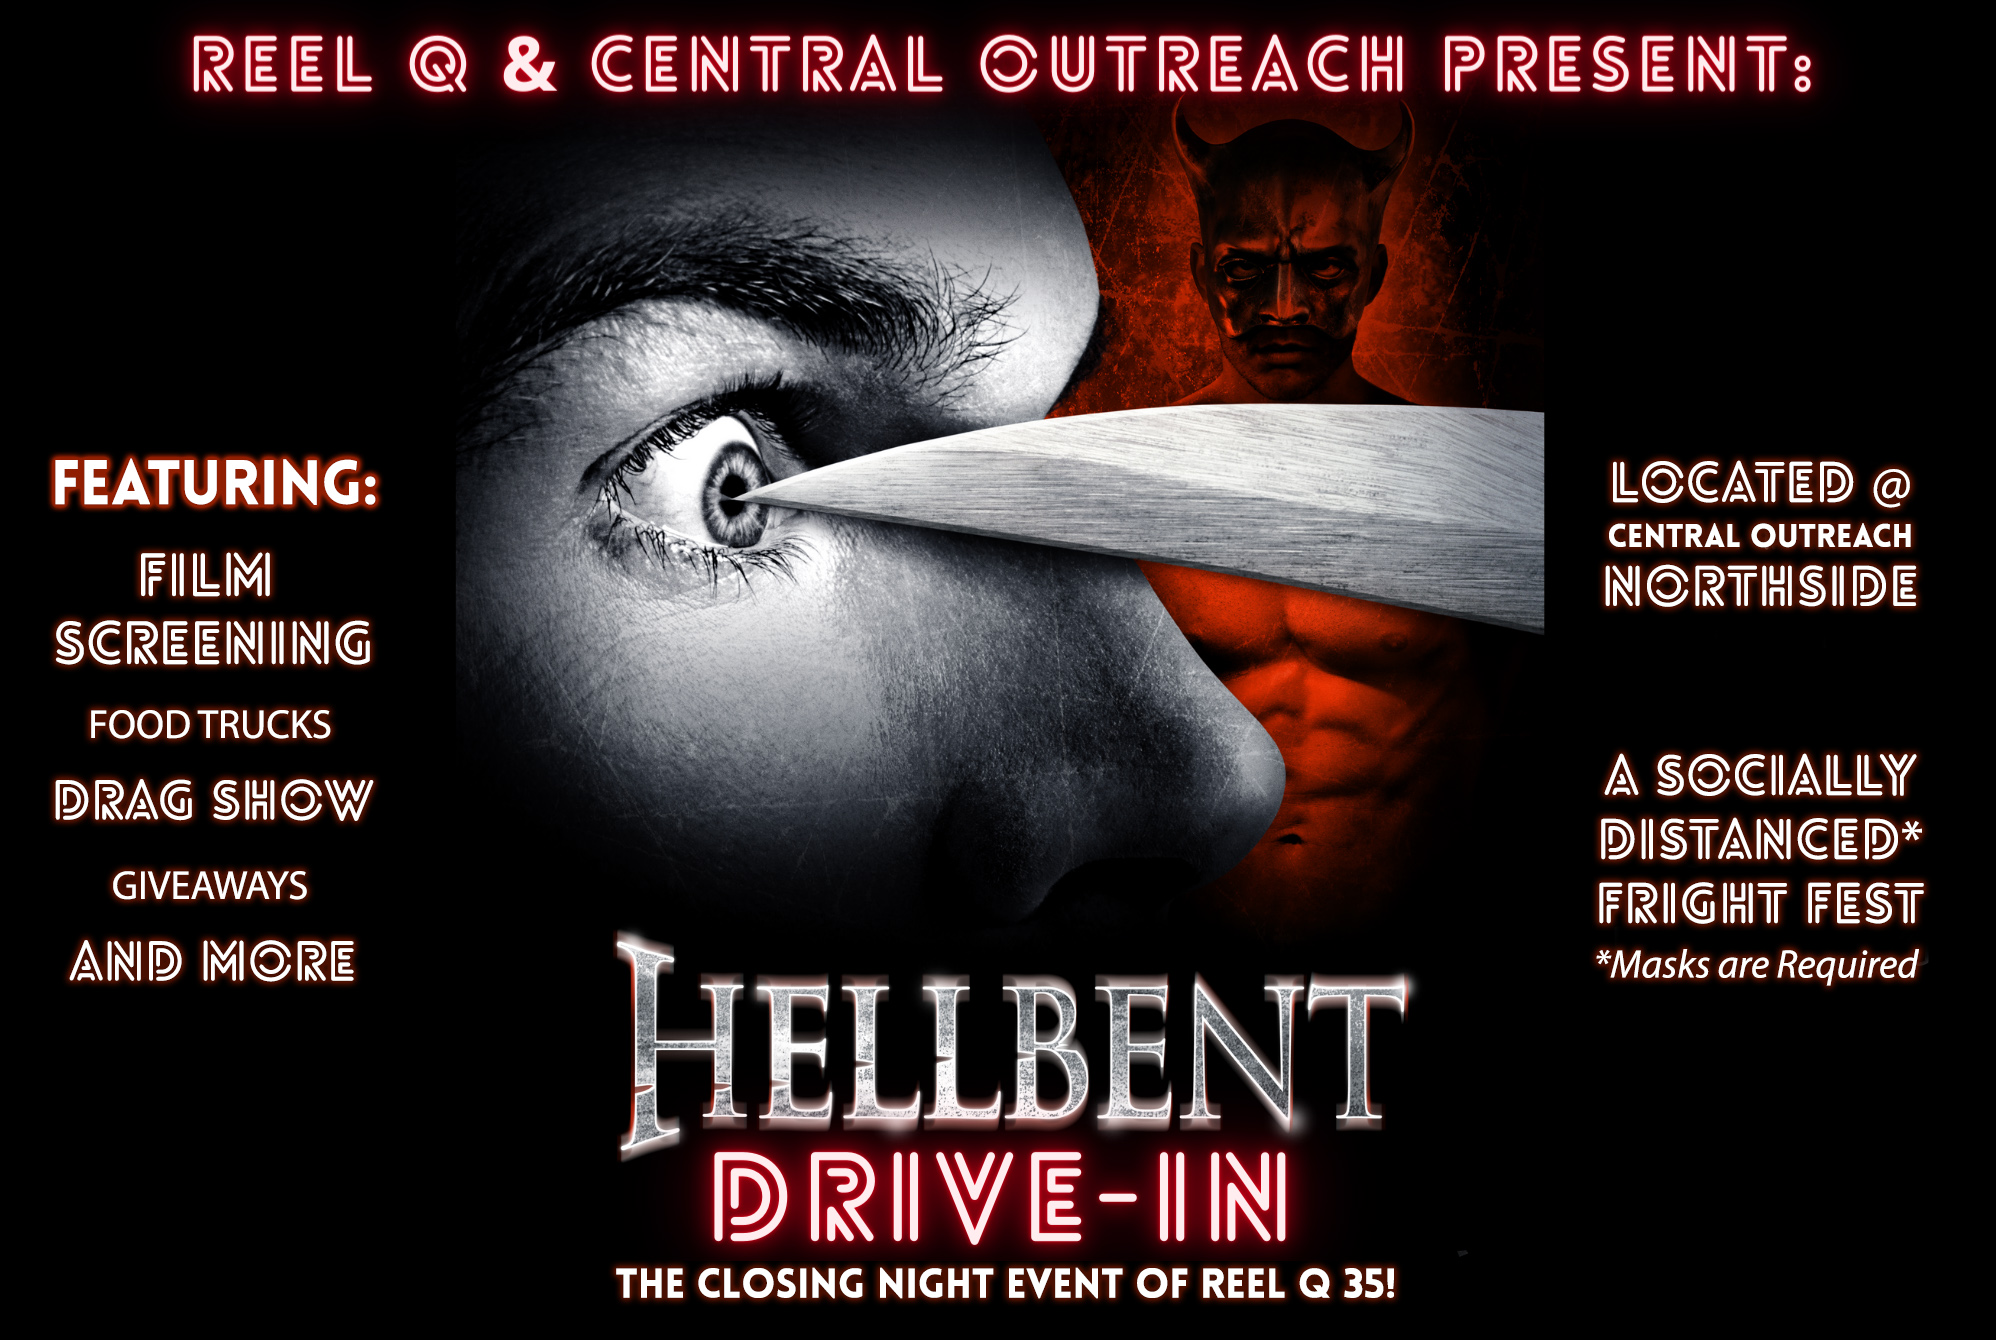 Hellbent Drive In Event